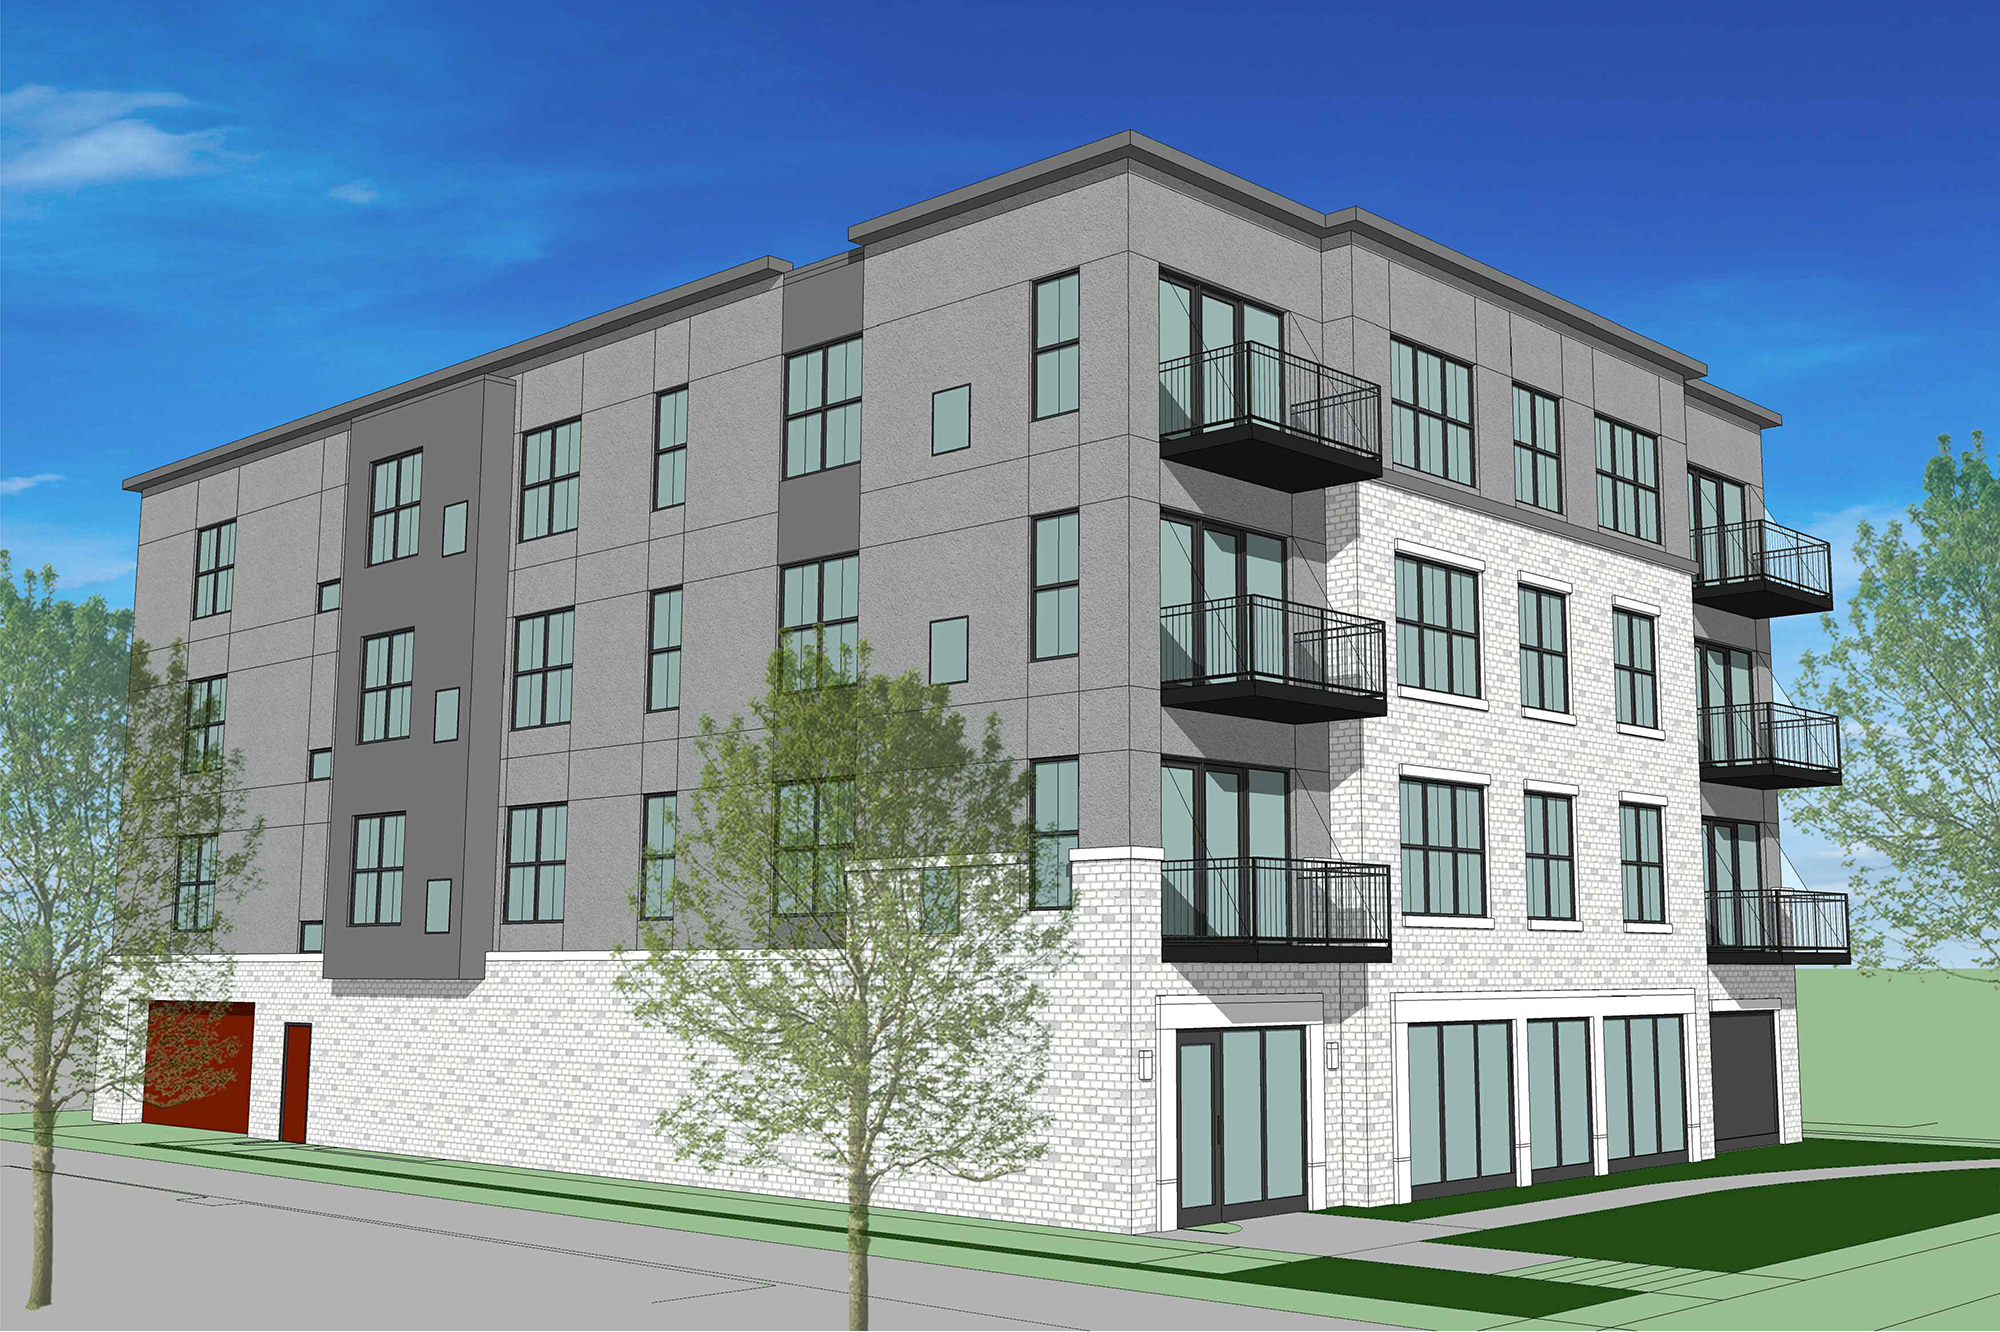 Green-lit Tangletown apartment hits snag over parking ...